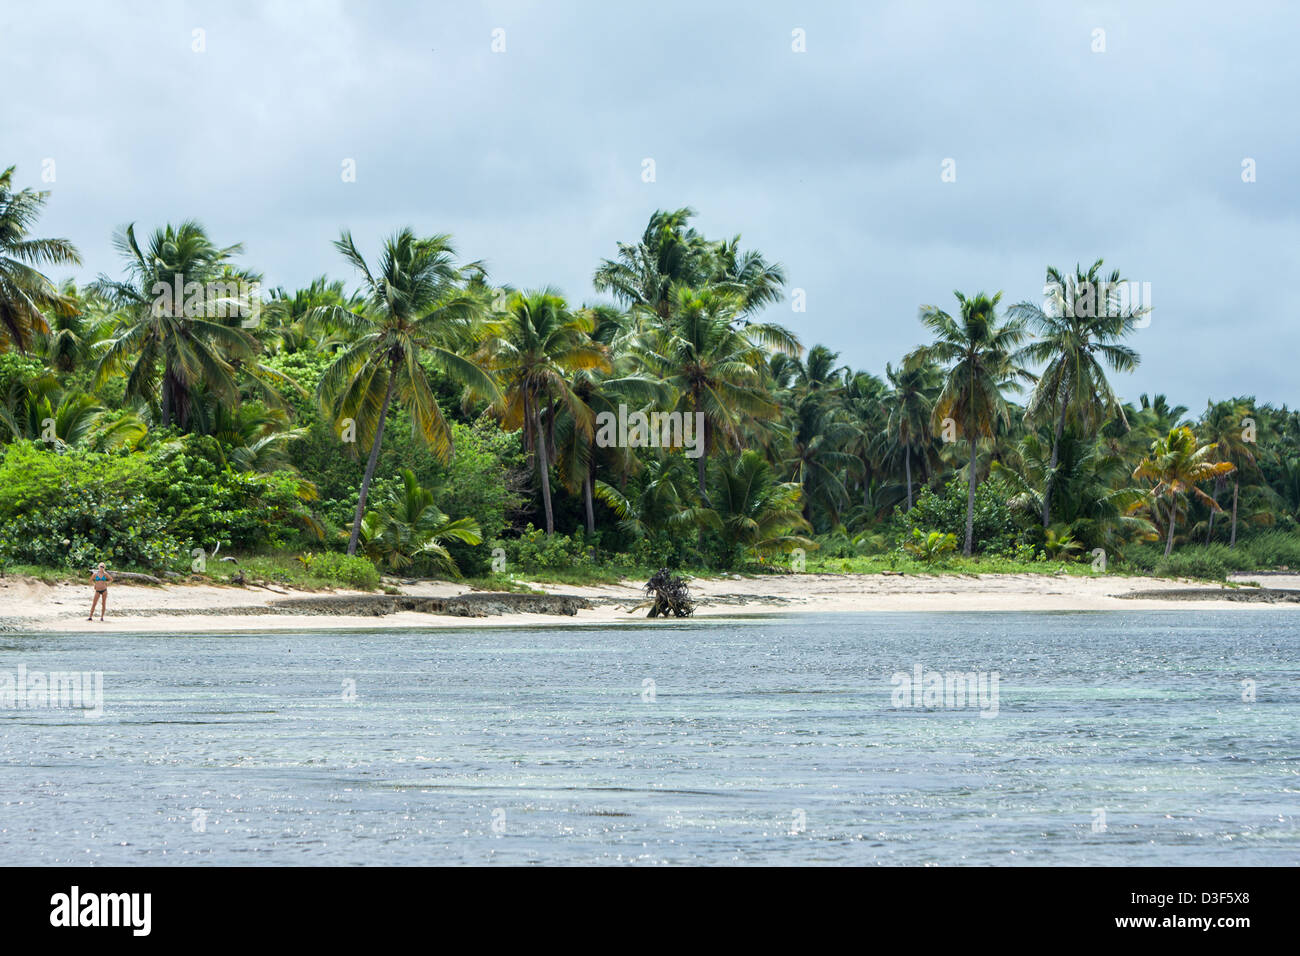 Girl in a swimsuit on a desert beach covered with coconut palms - Stock Image